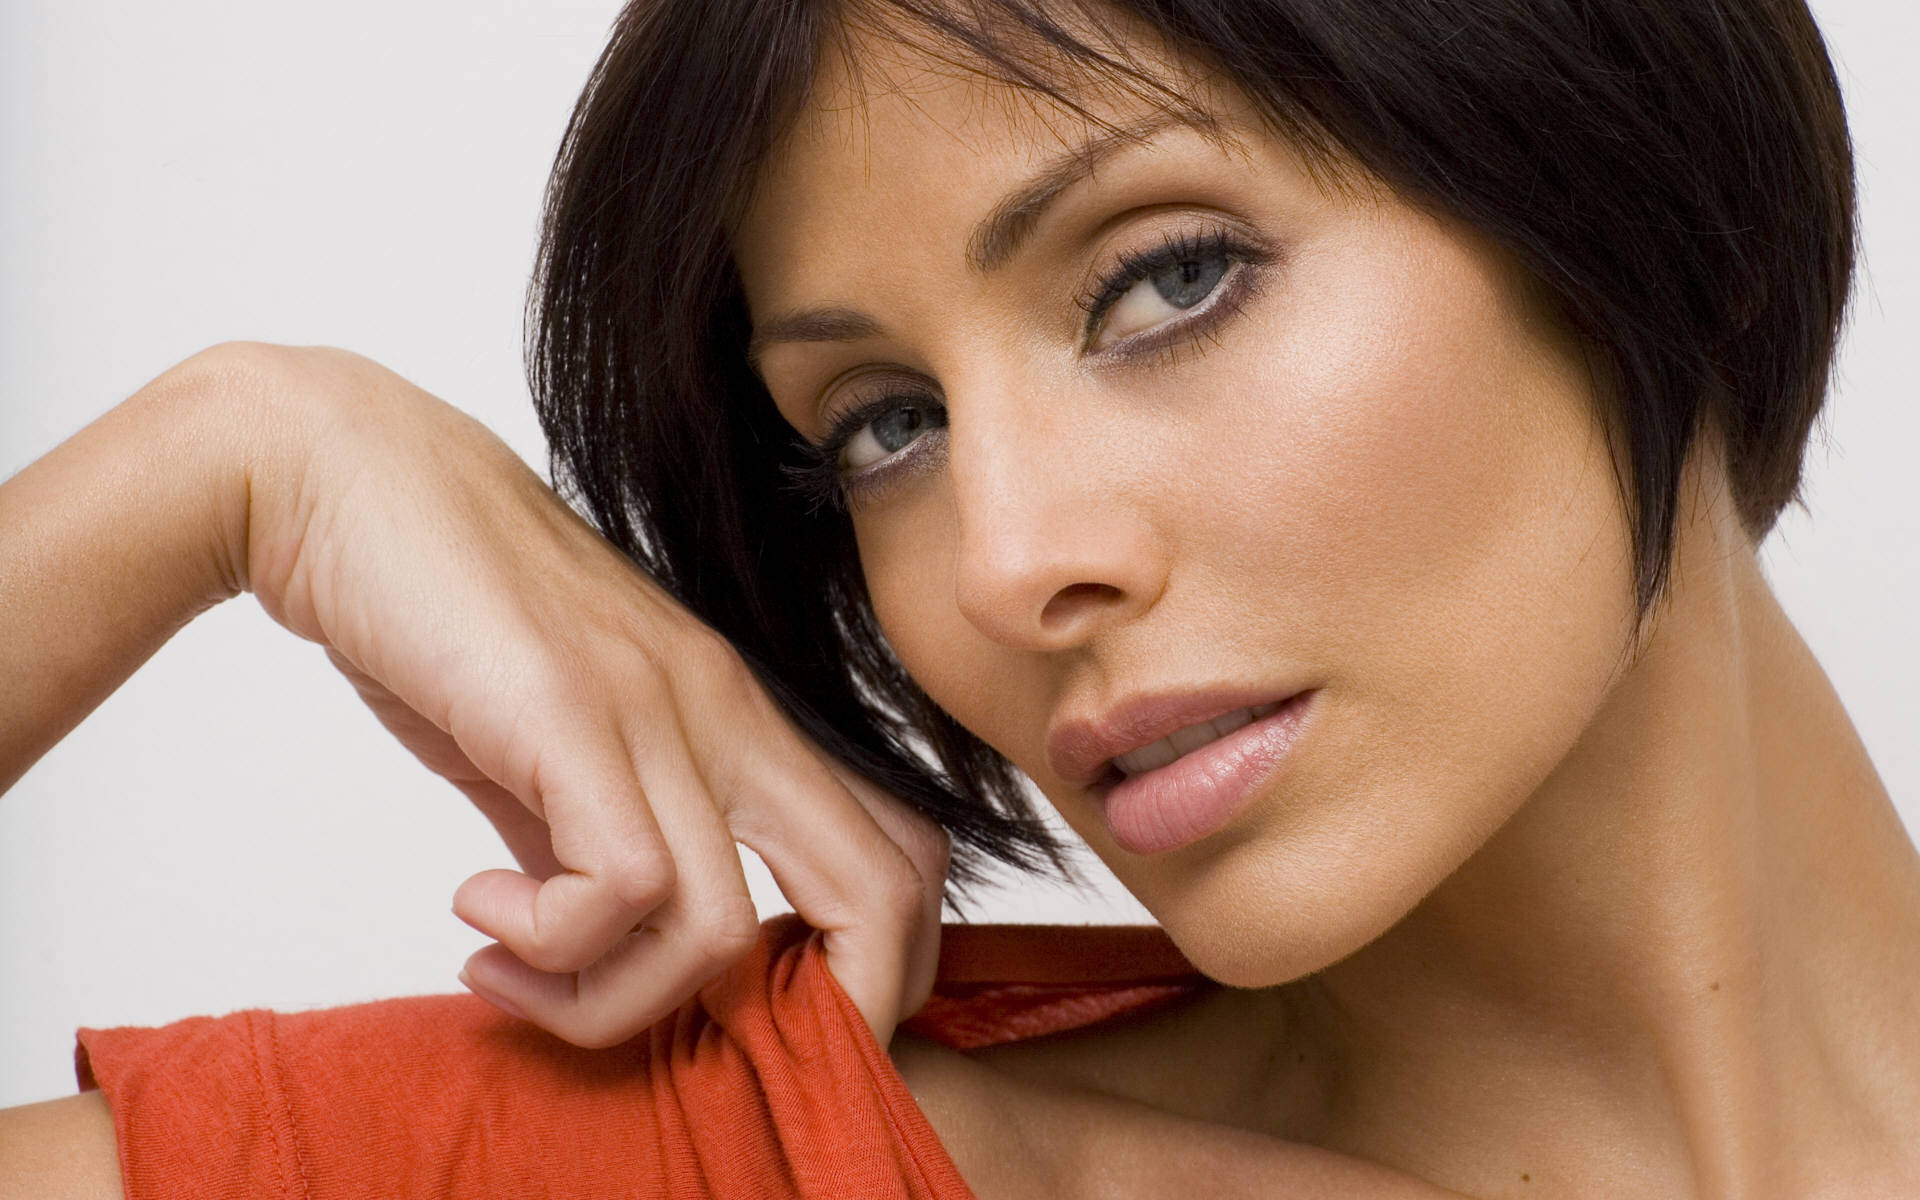 natalie imbruglia desktop wallpaper 51391